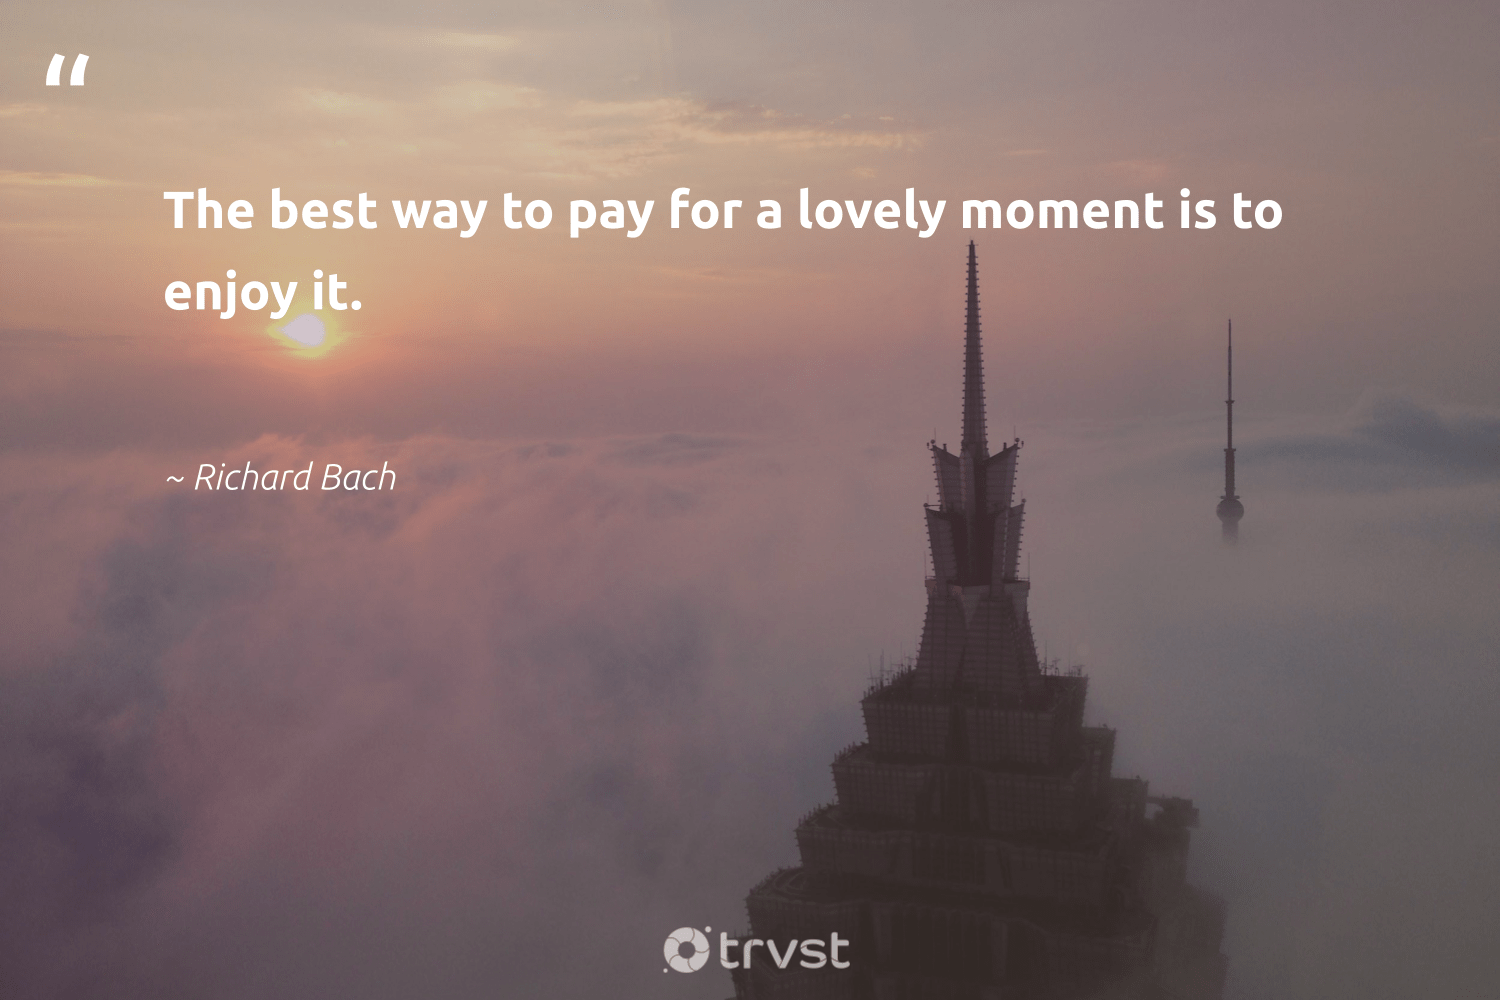 """The best way to pay for a lovely moment is to enjoy it.""  - Richard Bach #trvst #quotes #mindset #impact #begreat #ecoconscious #health #dotherightthing #changemakers #dogood #togetherwecan #collectiveaction"